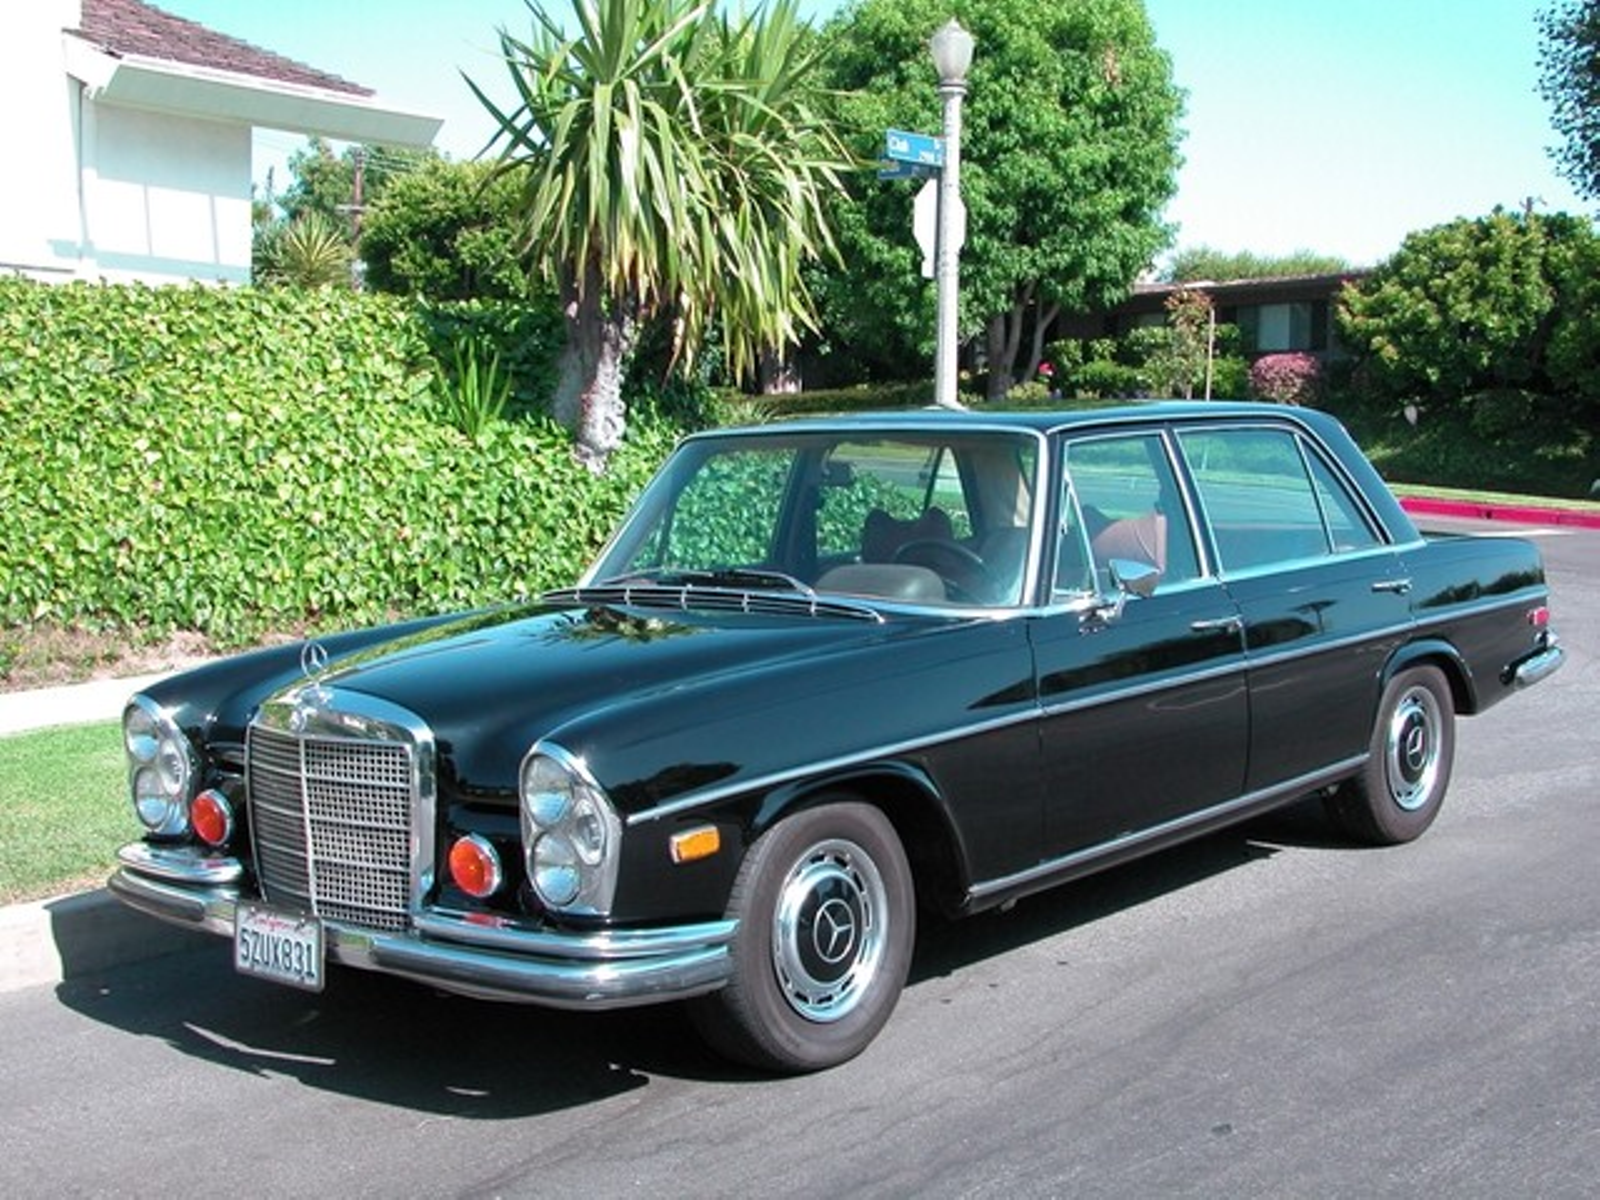 1972 mercedes benz 280 sel 45 super clean collectible for 1972 mercedes benz